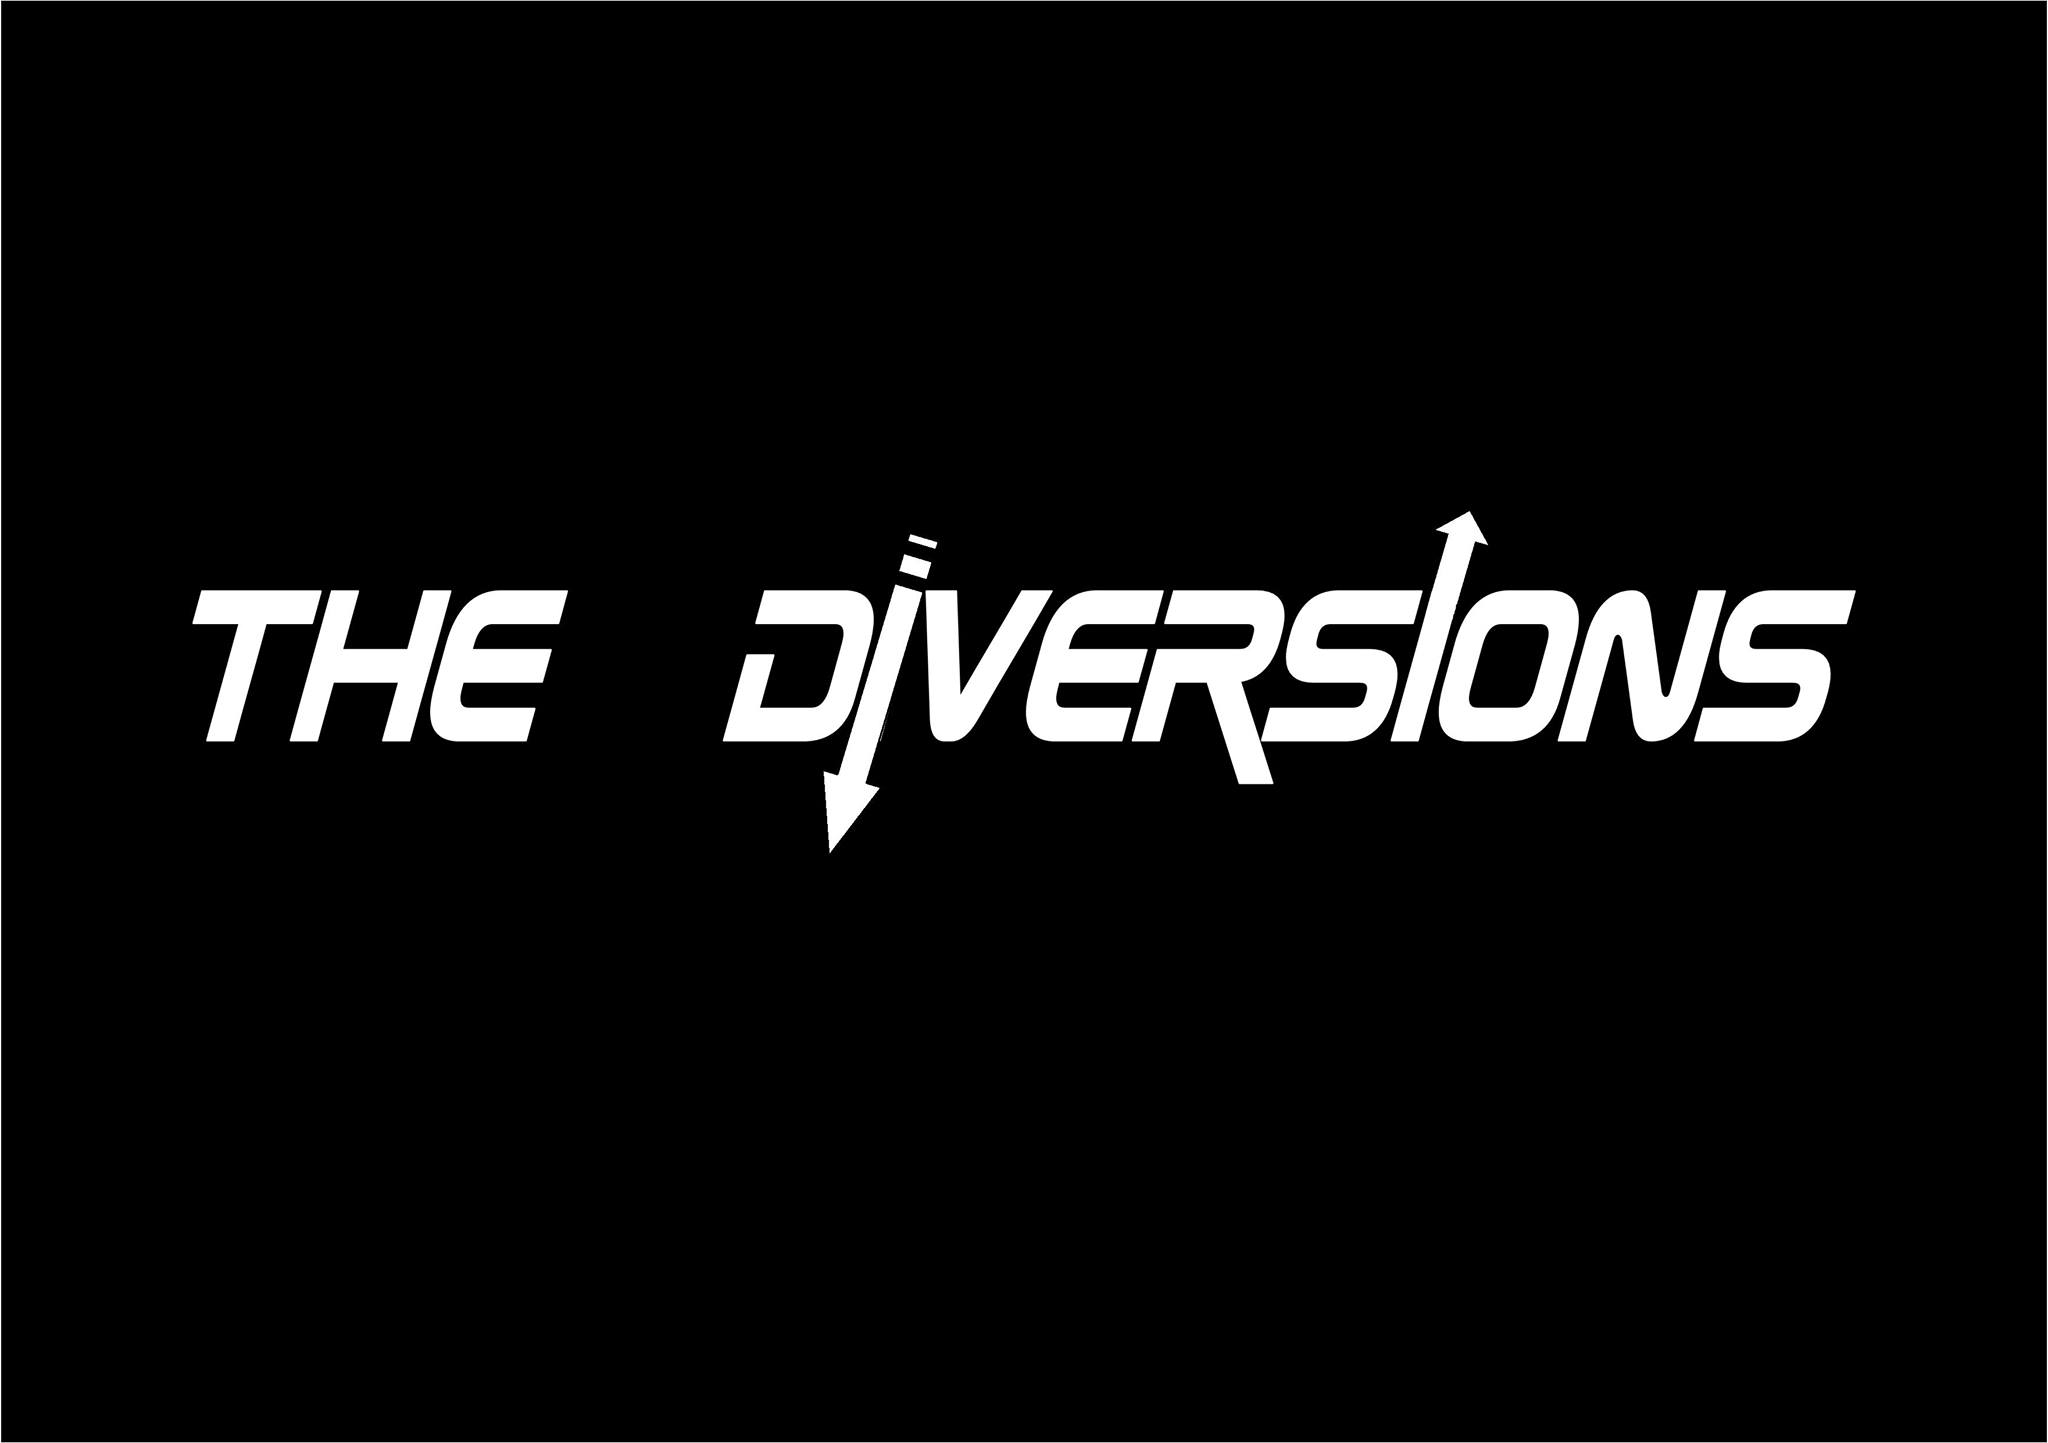 THE DIVERSIONS, THE HOUSE ROCKERS, FUNKWILD, MICHAEL DODDS